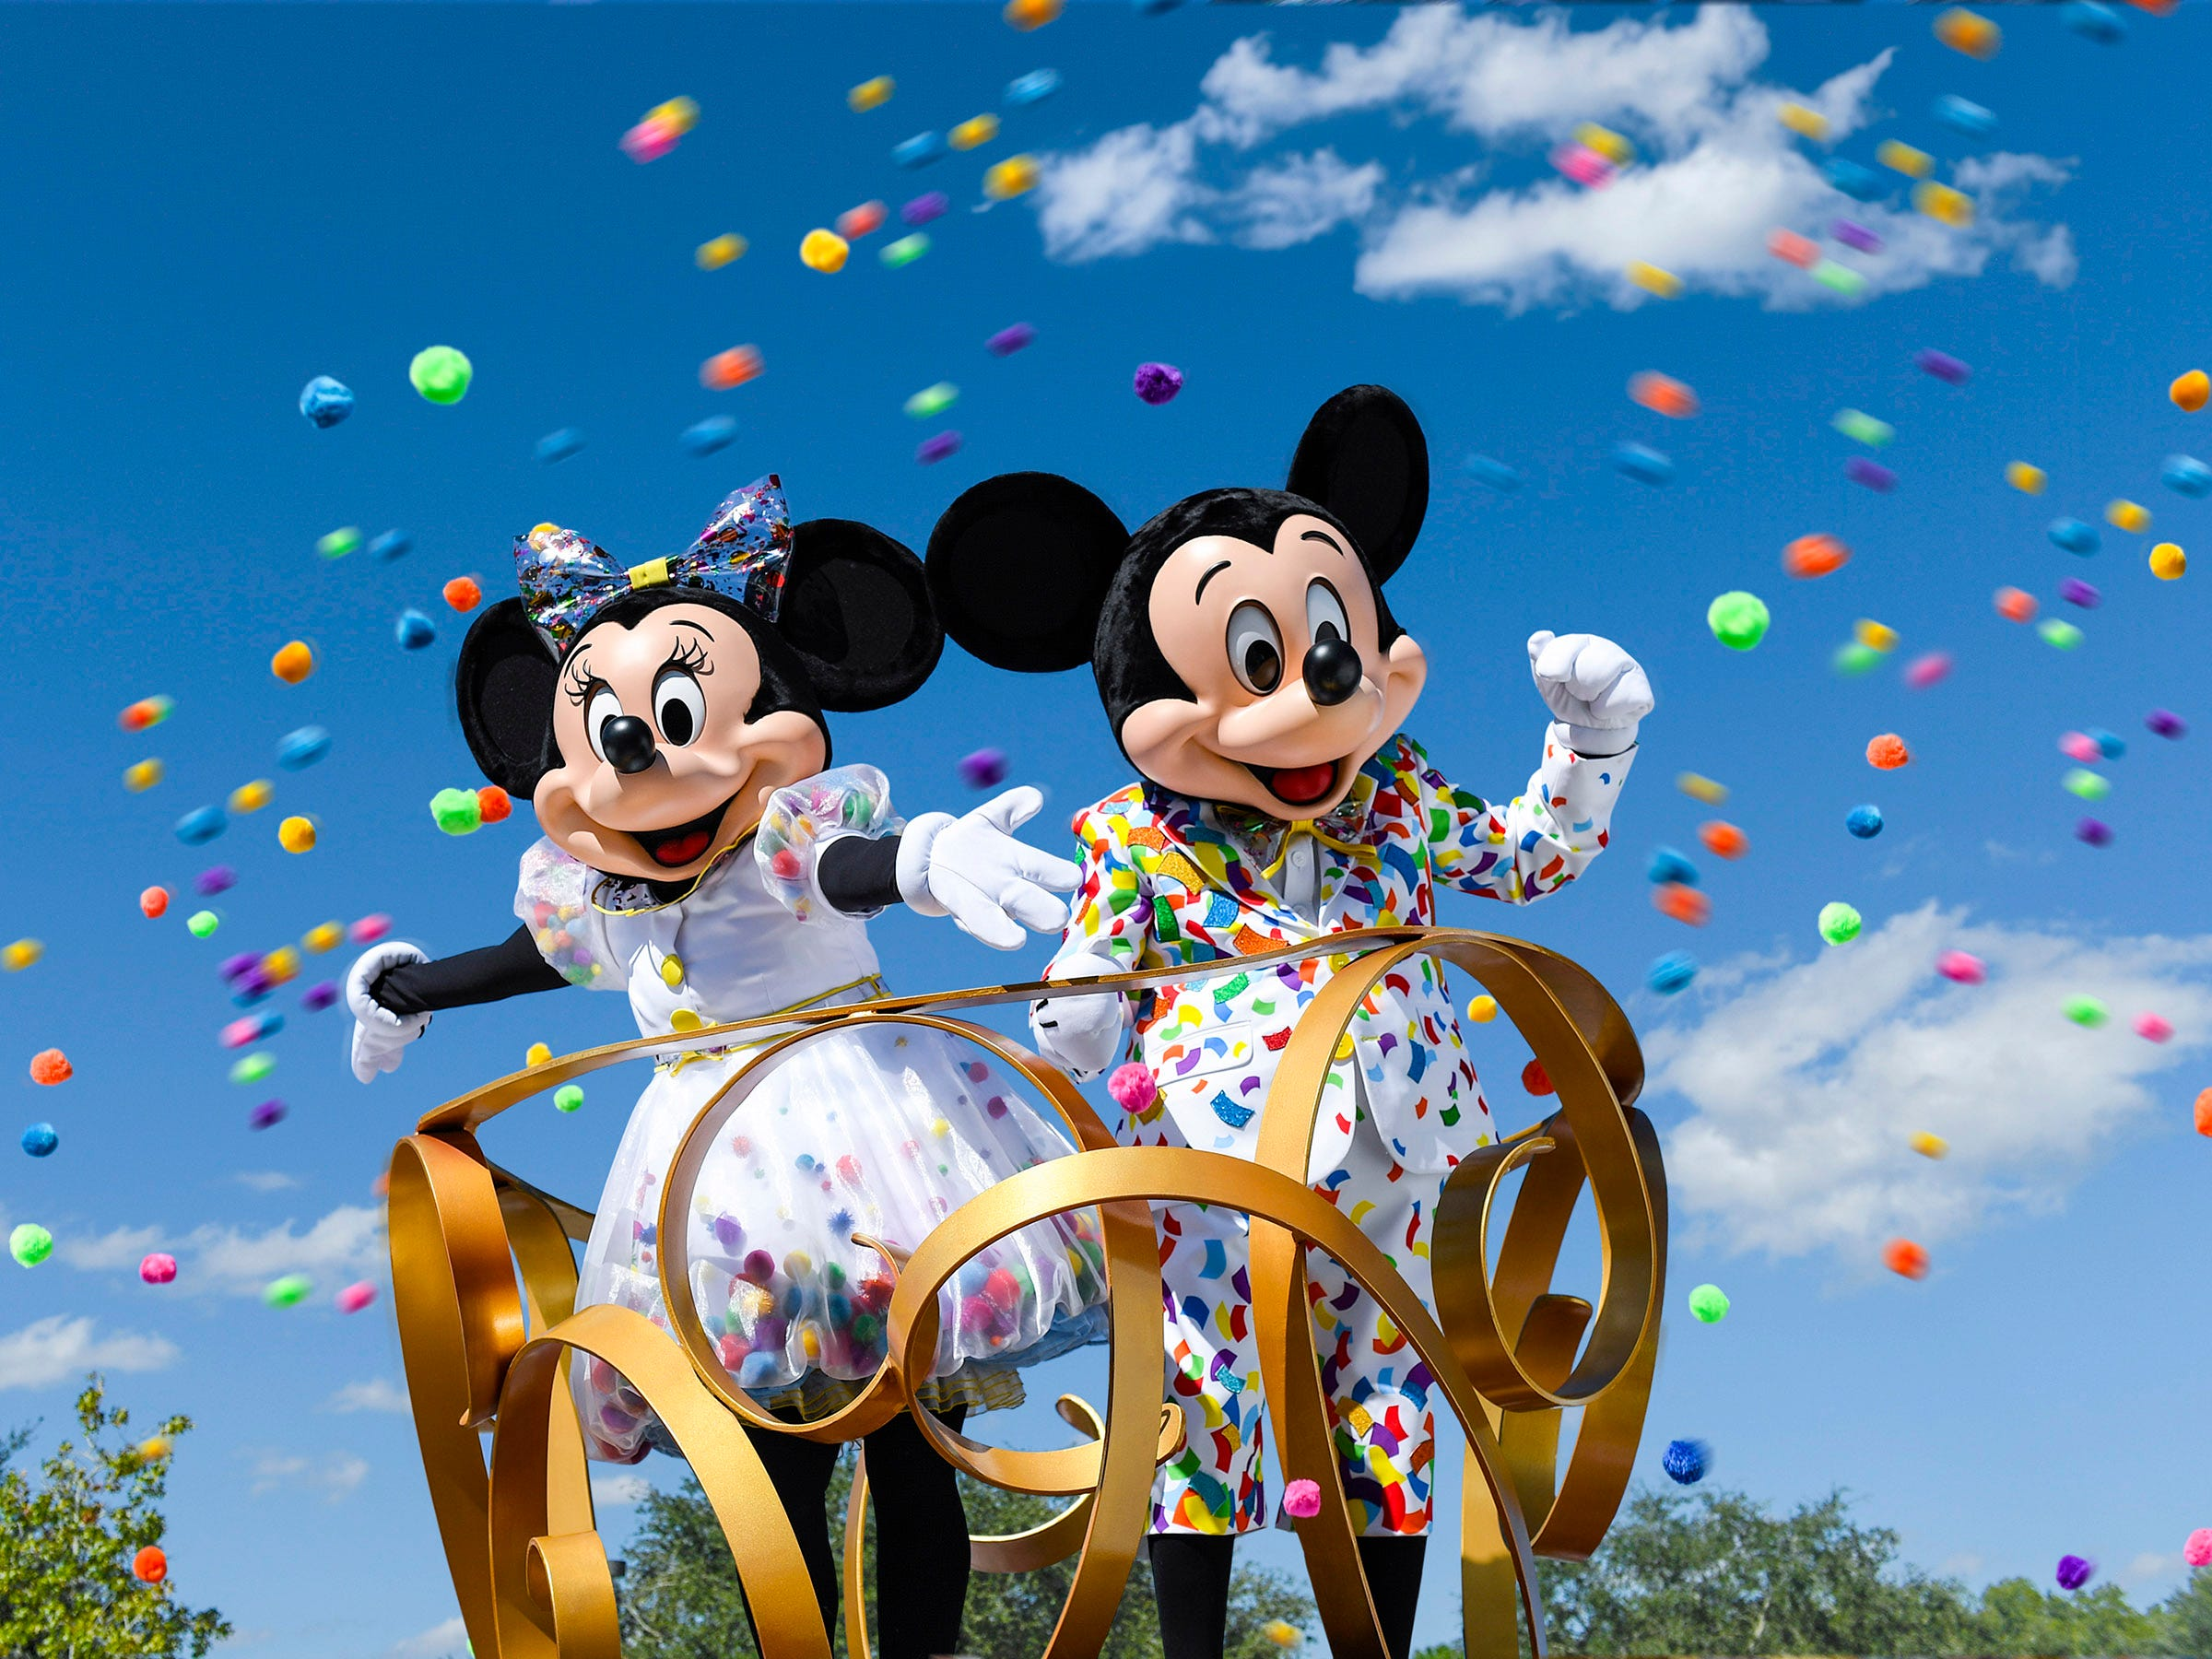 Mickey Mouse and Minnie Mouse don new outfits to commemorate 90 years of magic in celebrations across Disney Parks. Beginning in January 2019 at the Disneyland Resort,  guests are invited to Get Your Ears On - A Mickey and Minnie Celebration. The special party will feature new entertainment and decor at Disneyland, plus limited-time food and beverage offerings and festive merchandise available throughout the resort.